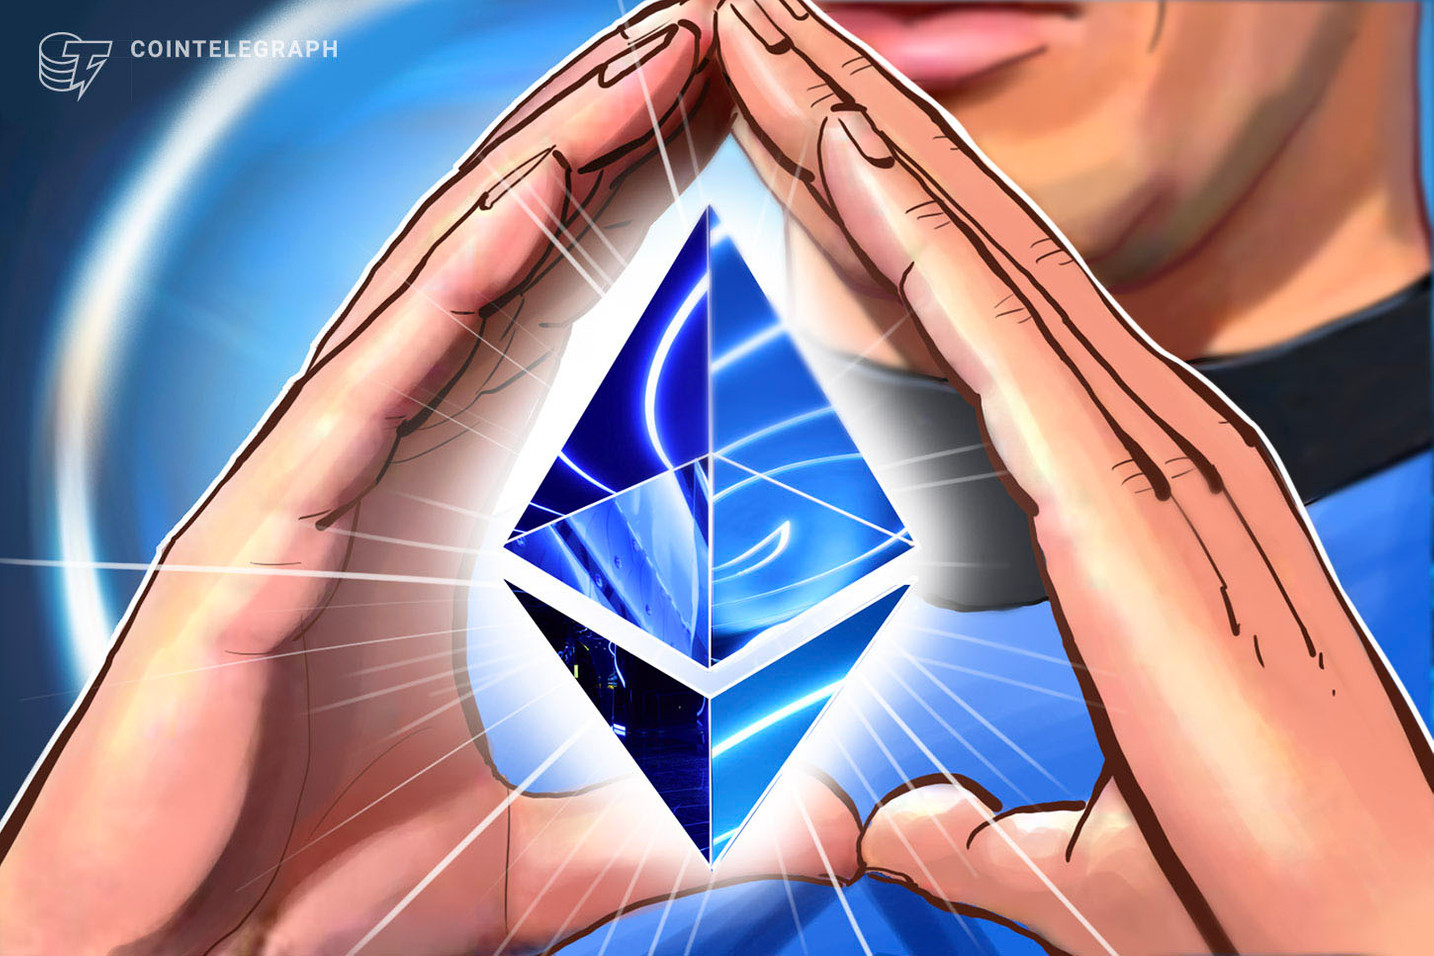 Ethereum Co-Founder Reportedly Sells 90k ETH To U.S. Cryptocurrency Exchange